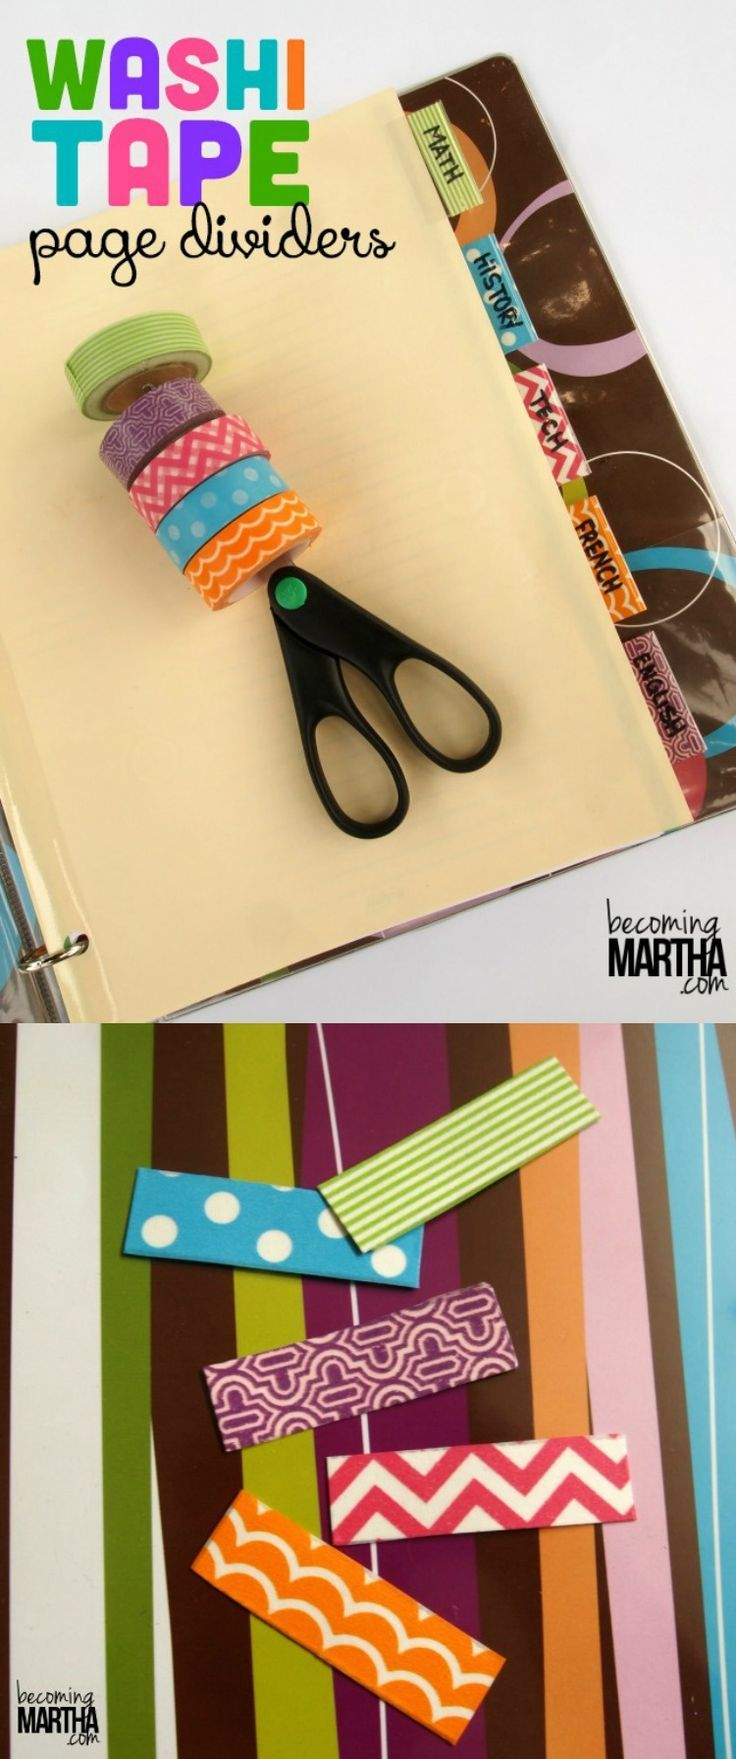 washi tape diy page dividers washi tape tape and create your own. Black Bedroom Furniture Sets. Home Design Ideas